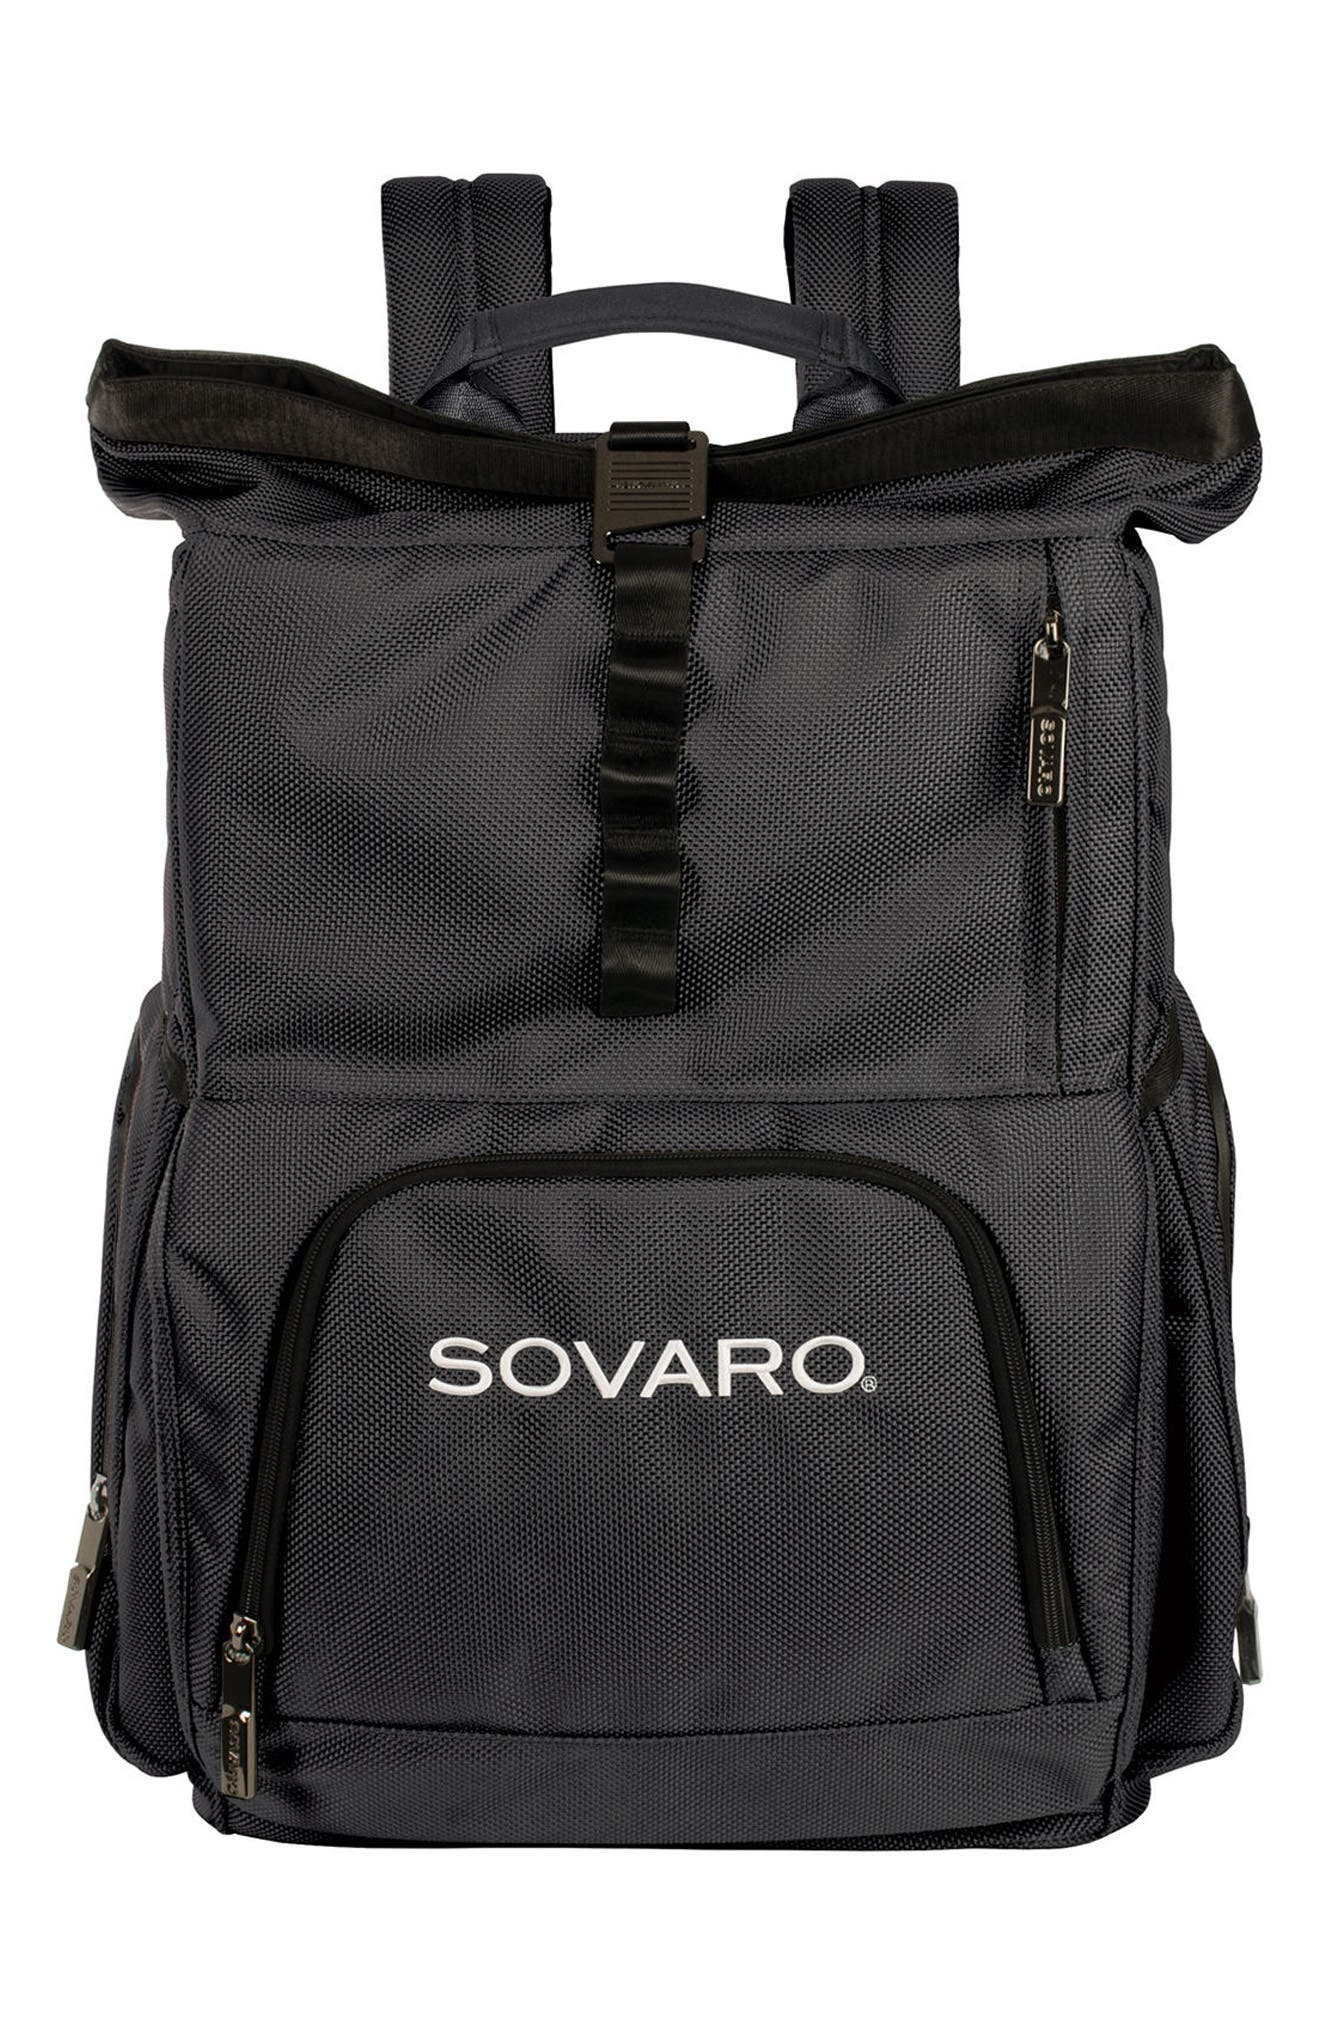 Sovaro Backpack Cooler